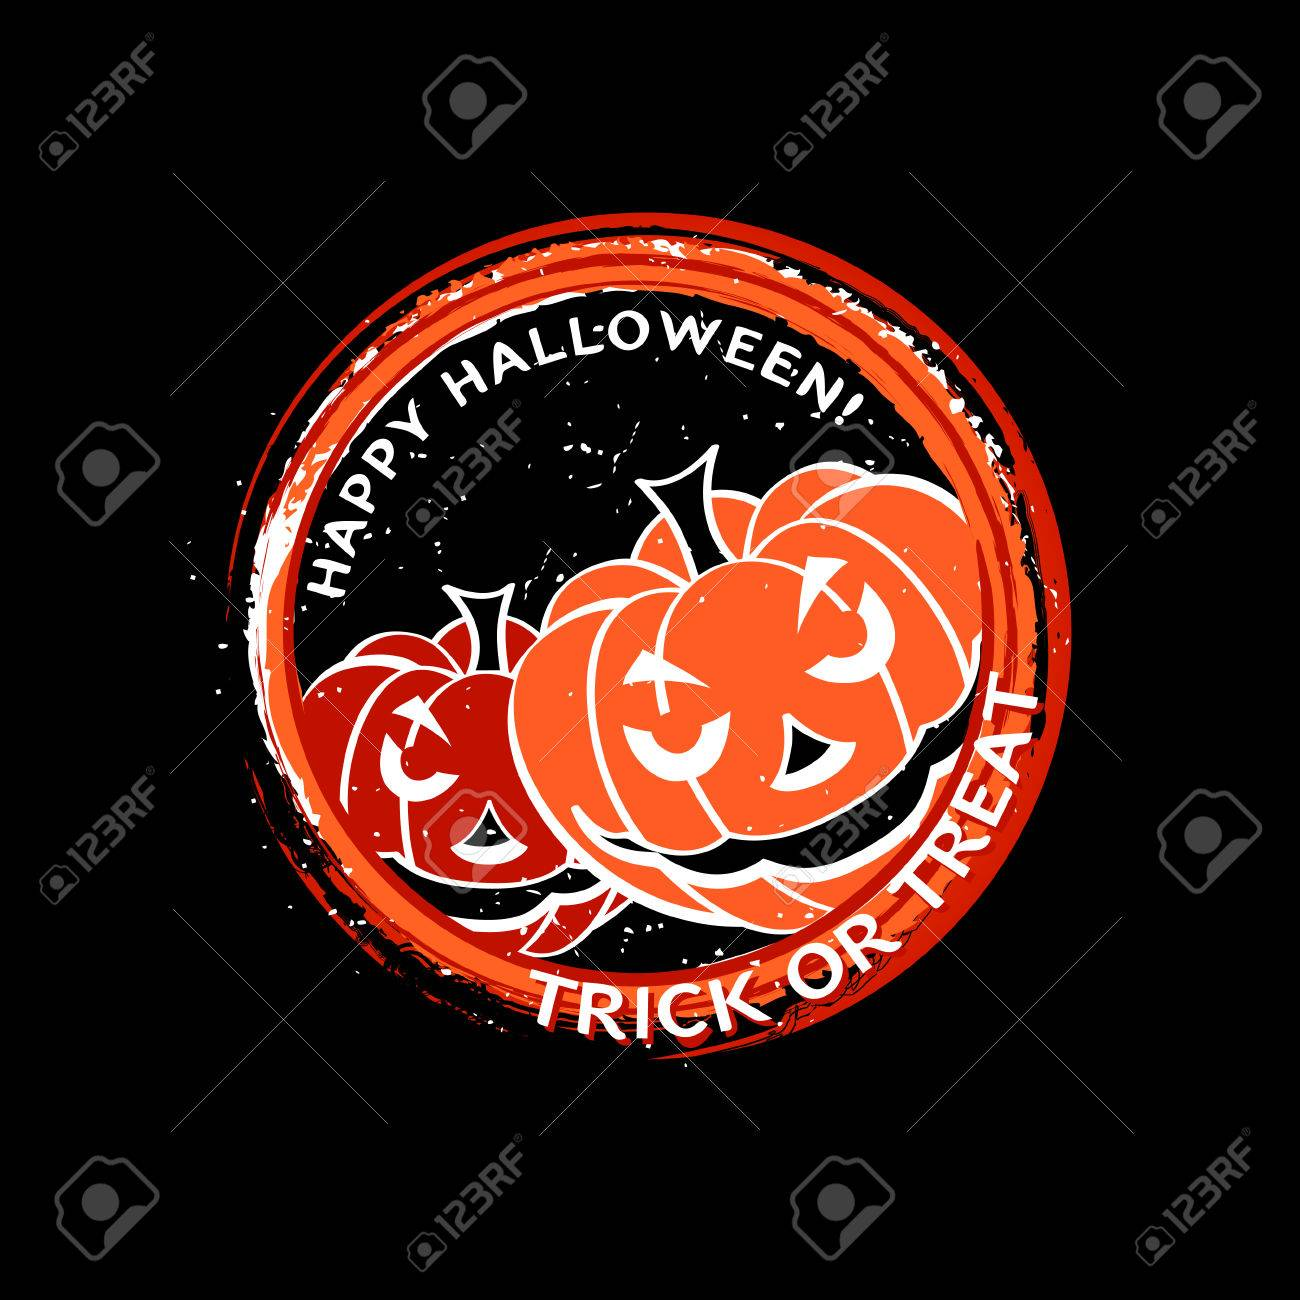 Grungy Halloween stamp with pumpkins Stock Vector - 7724604